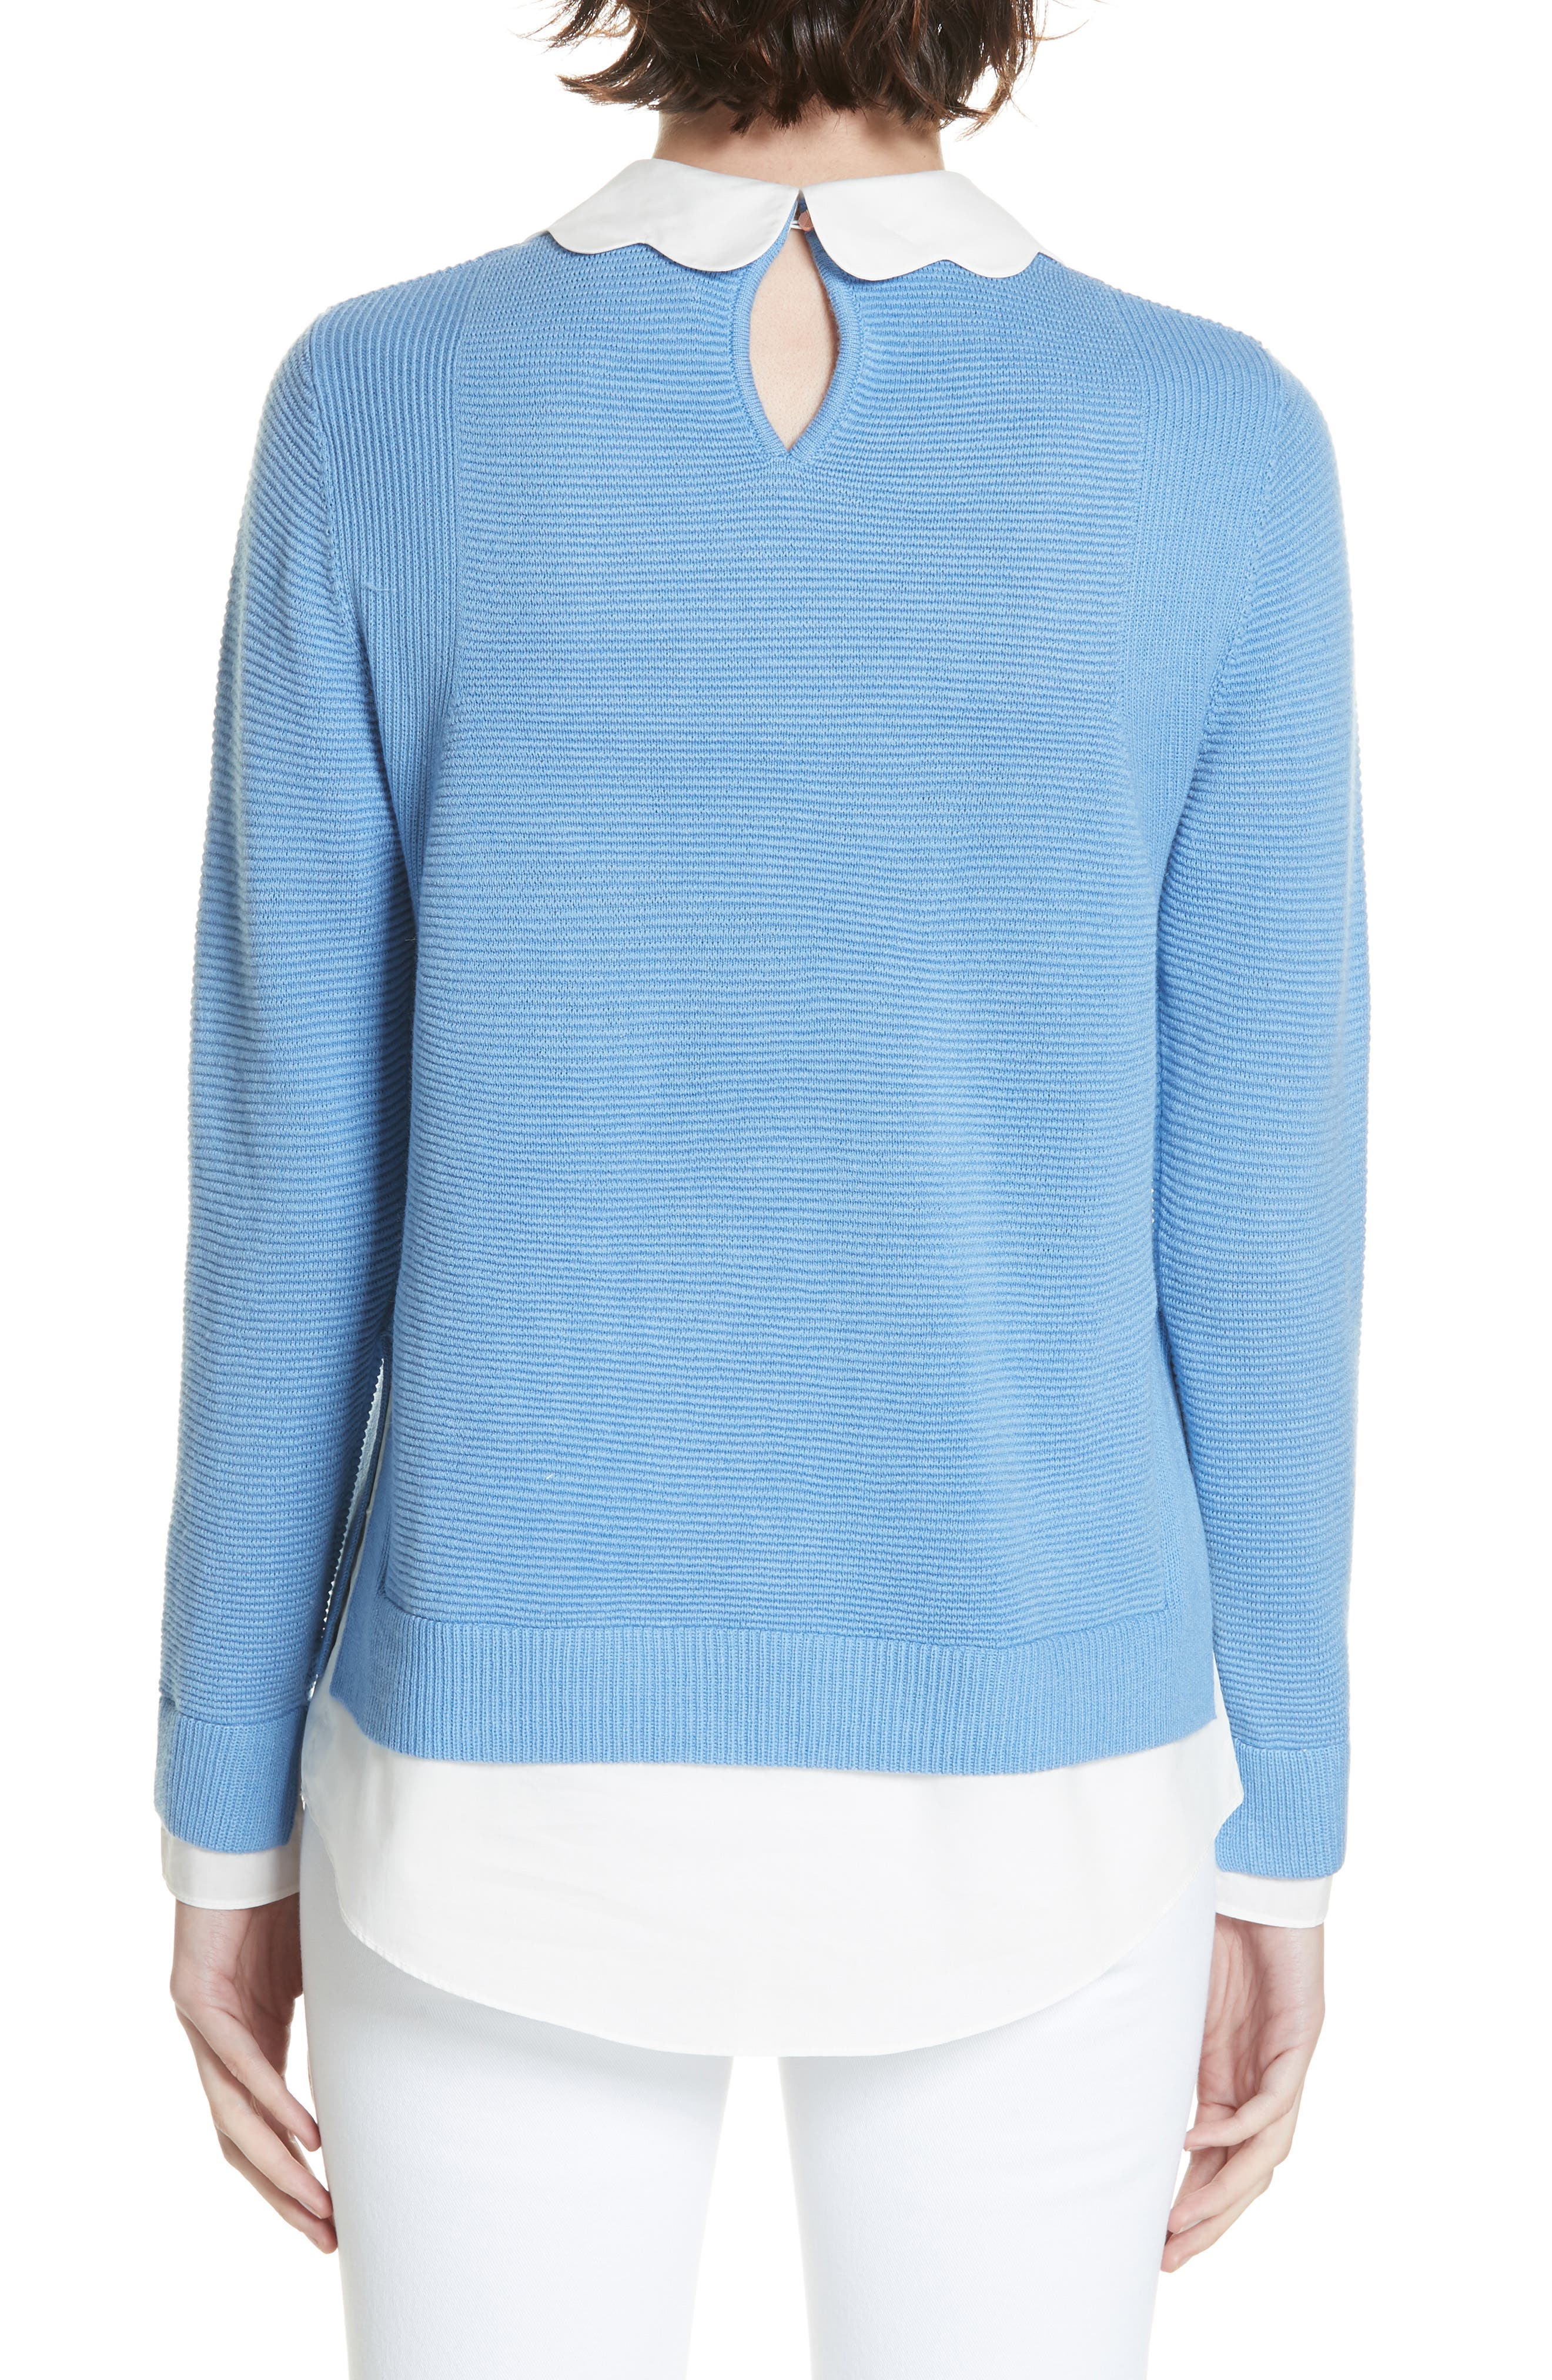 Bronwen Scalloped Collar Sweater,                             Alternate thumbnail 2, color,                             424